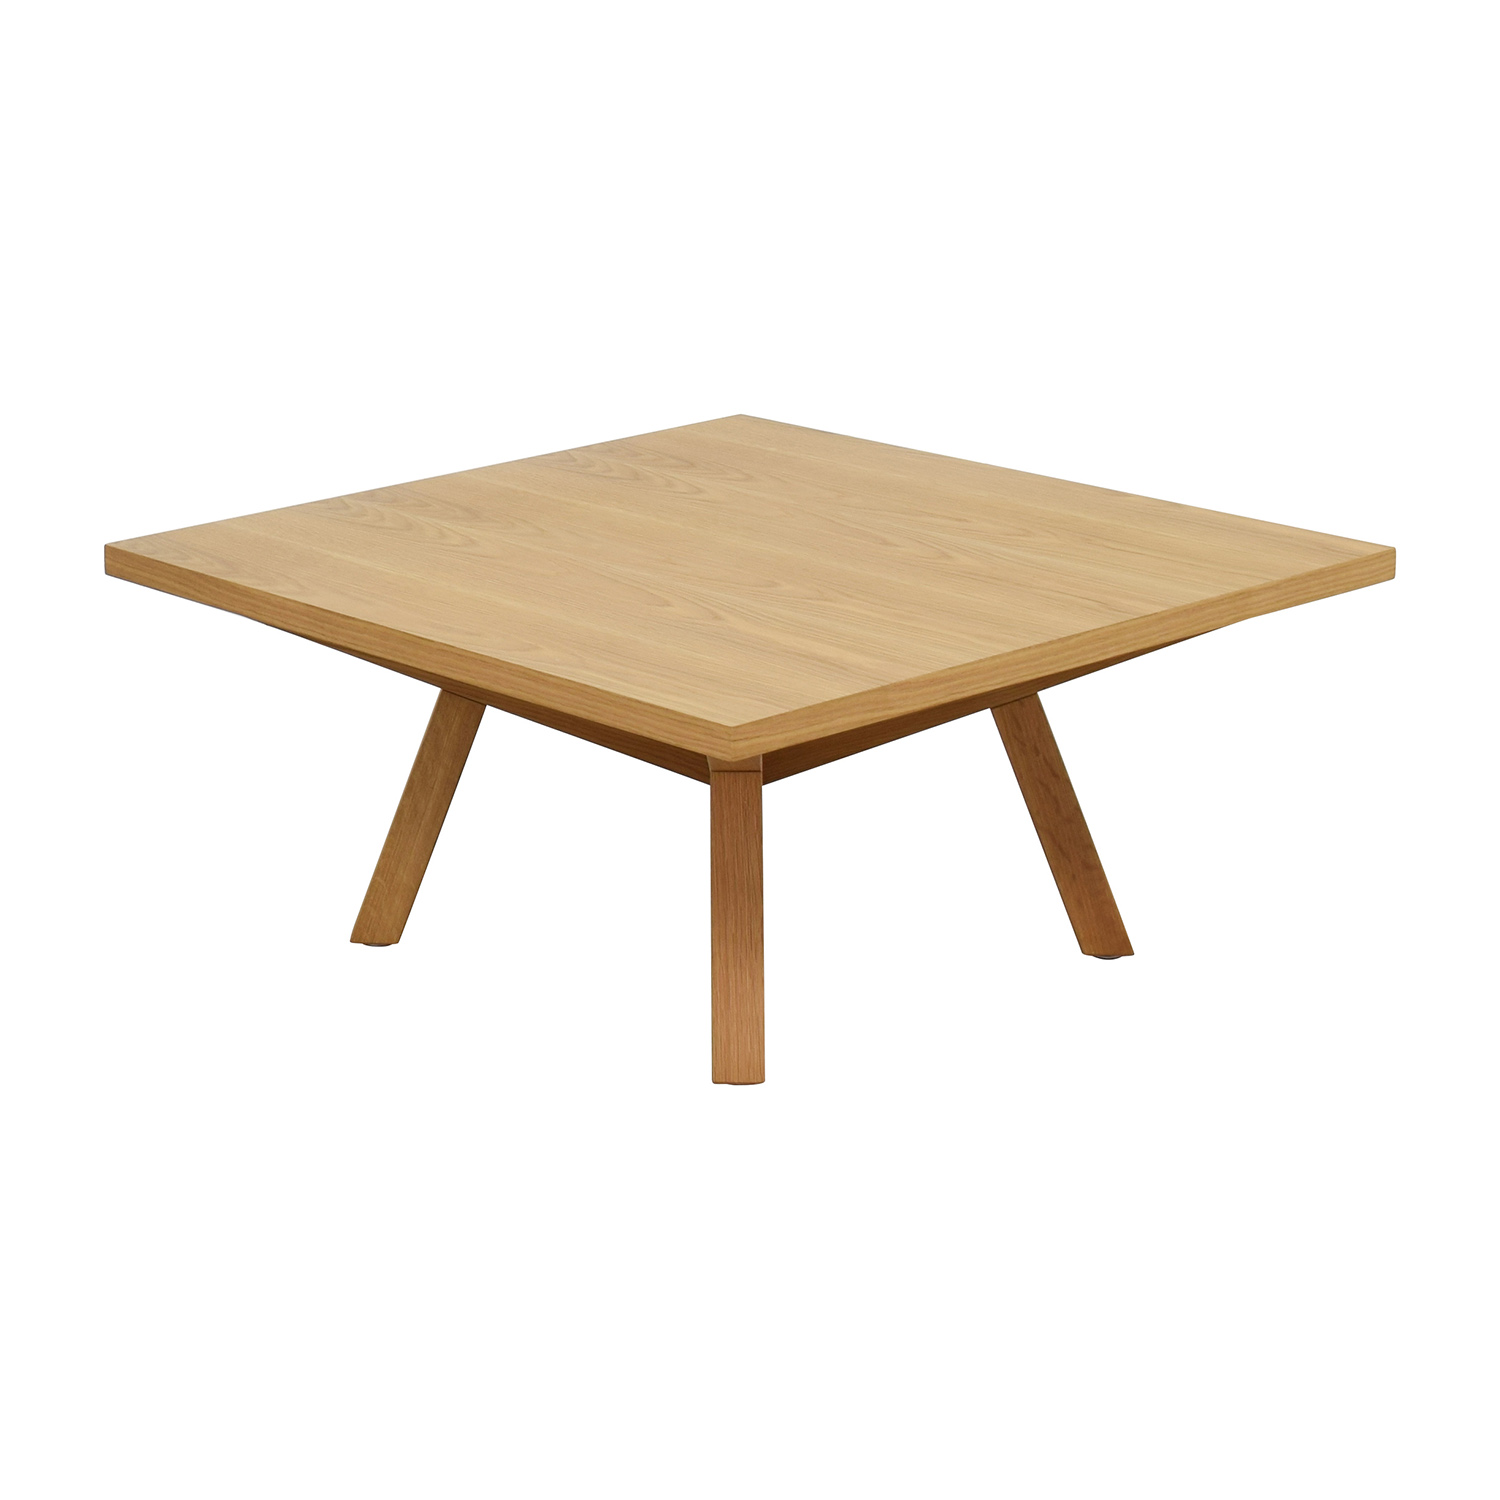 79 off inmod inmod sean dix forte square dining table for In mod furniture